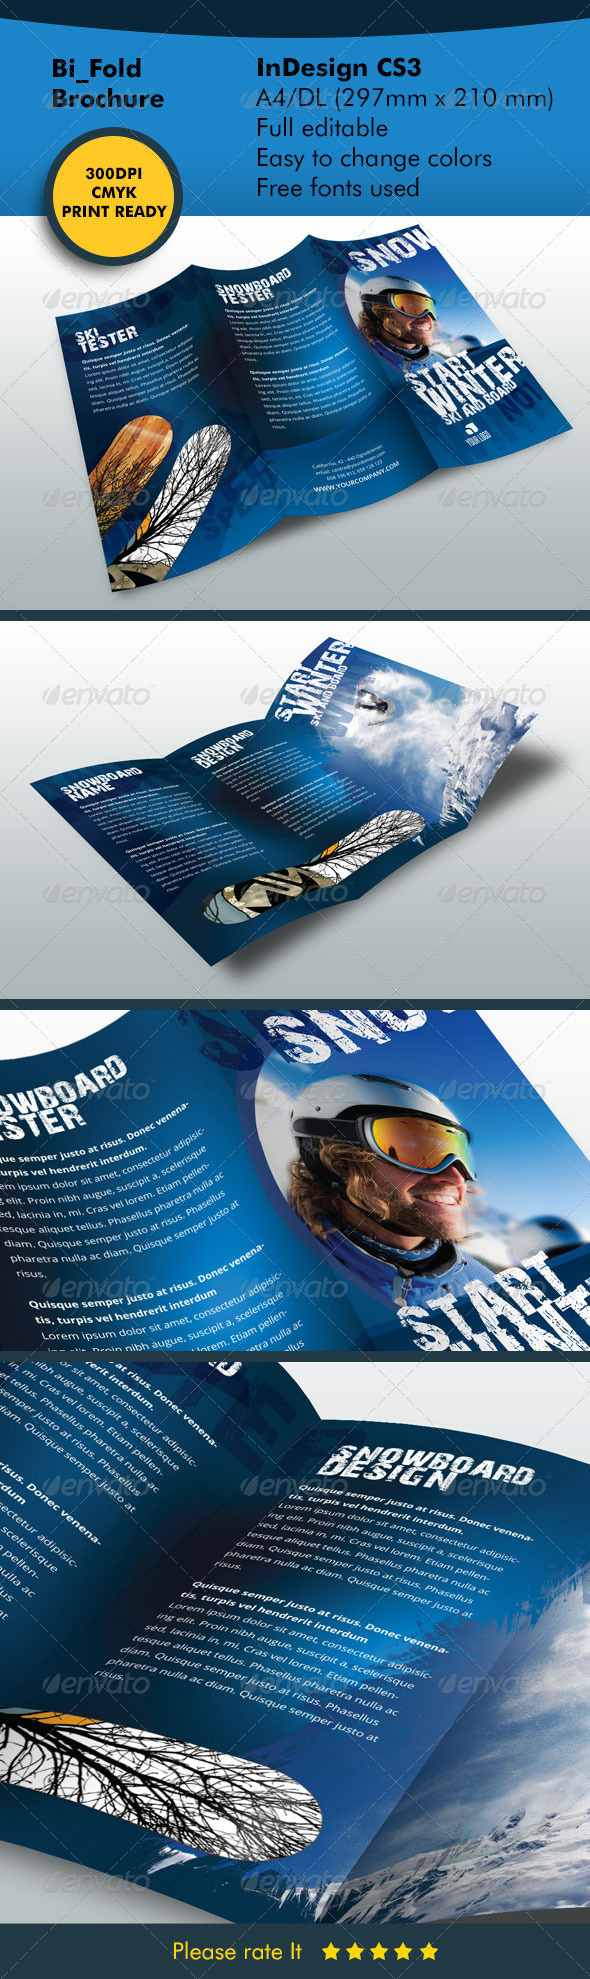 Winter 3fold Ski and Snowboard - Informational Brochures